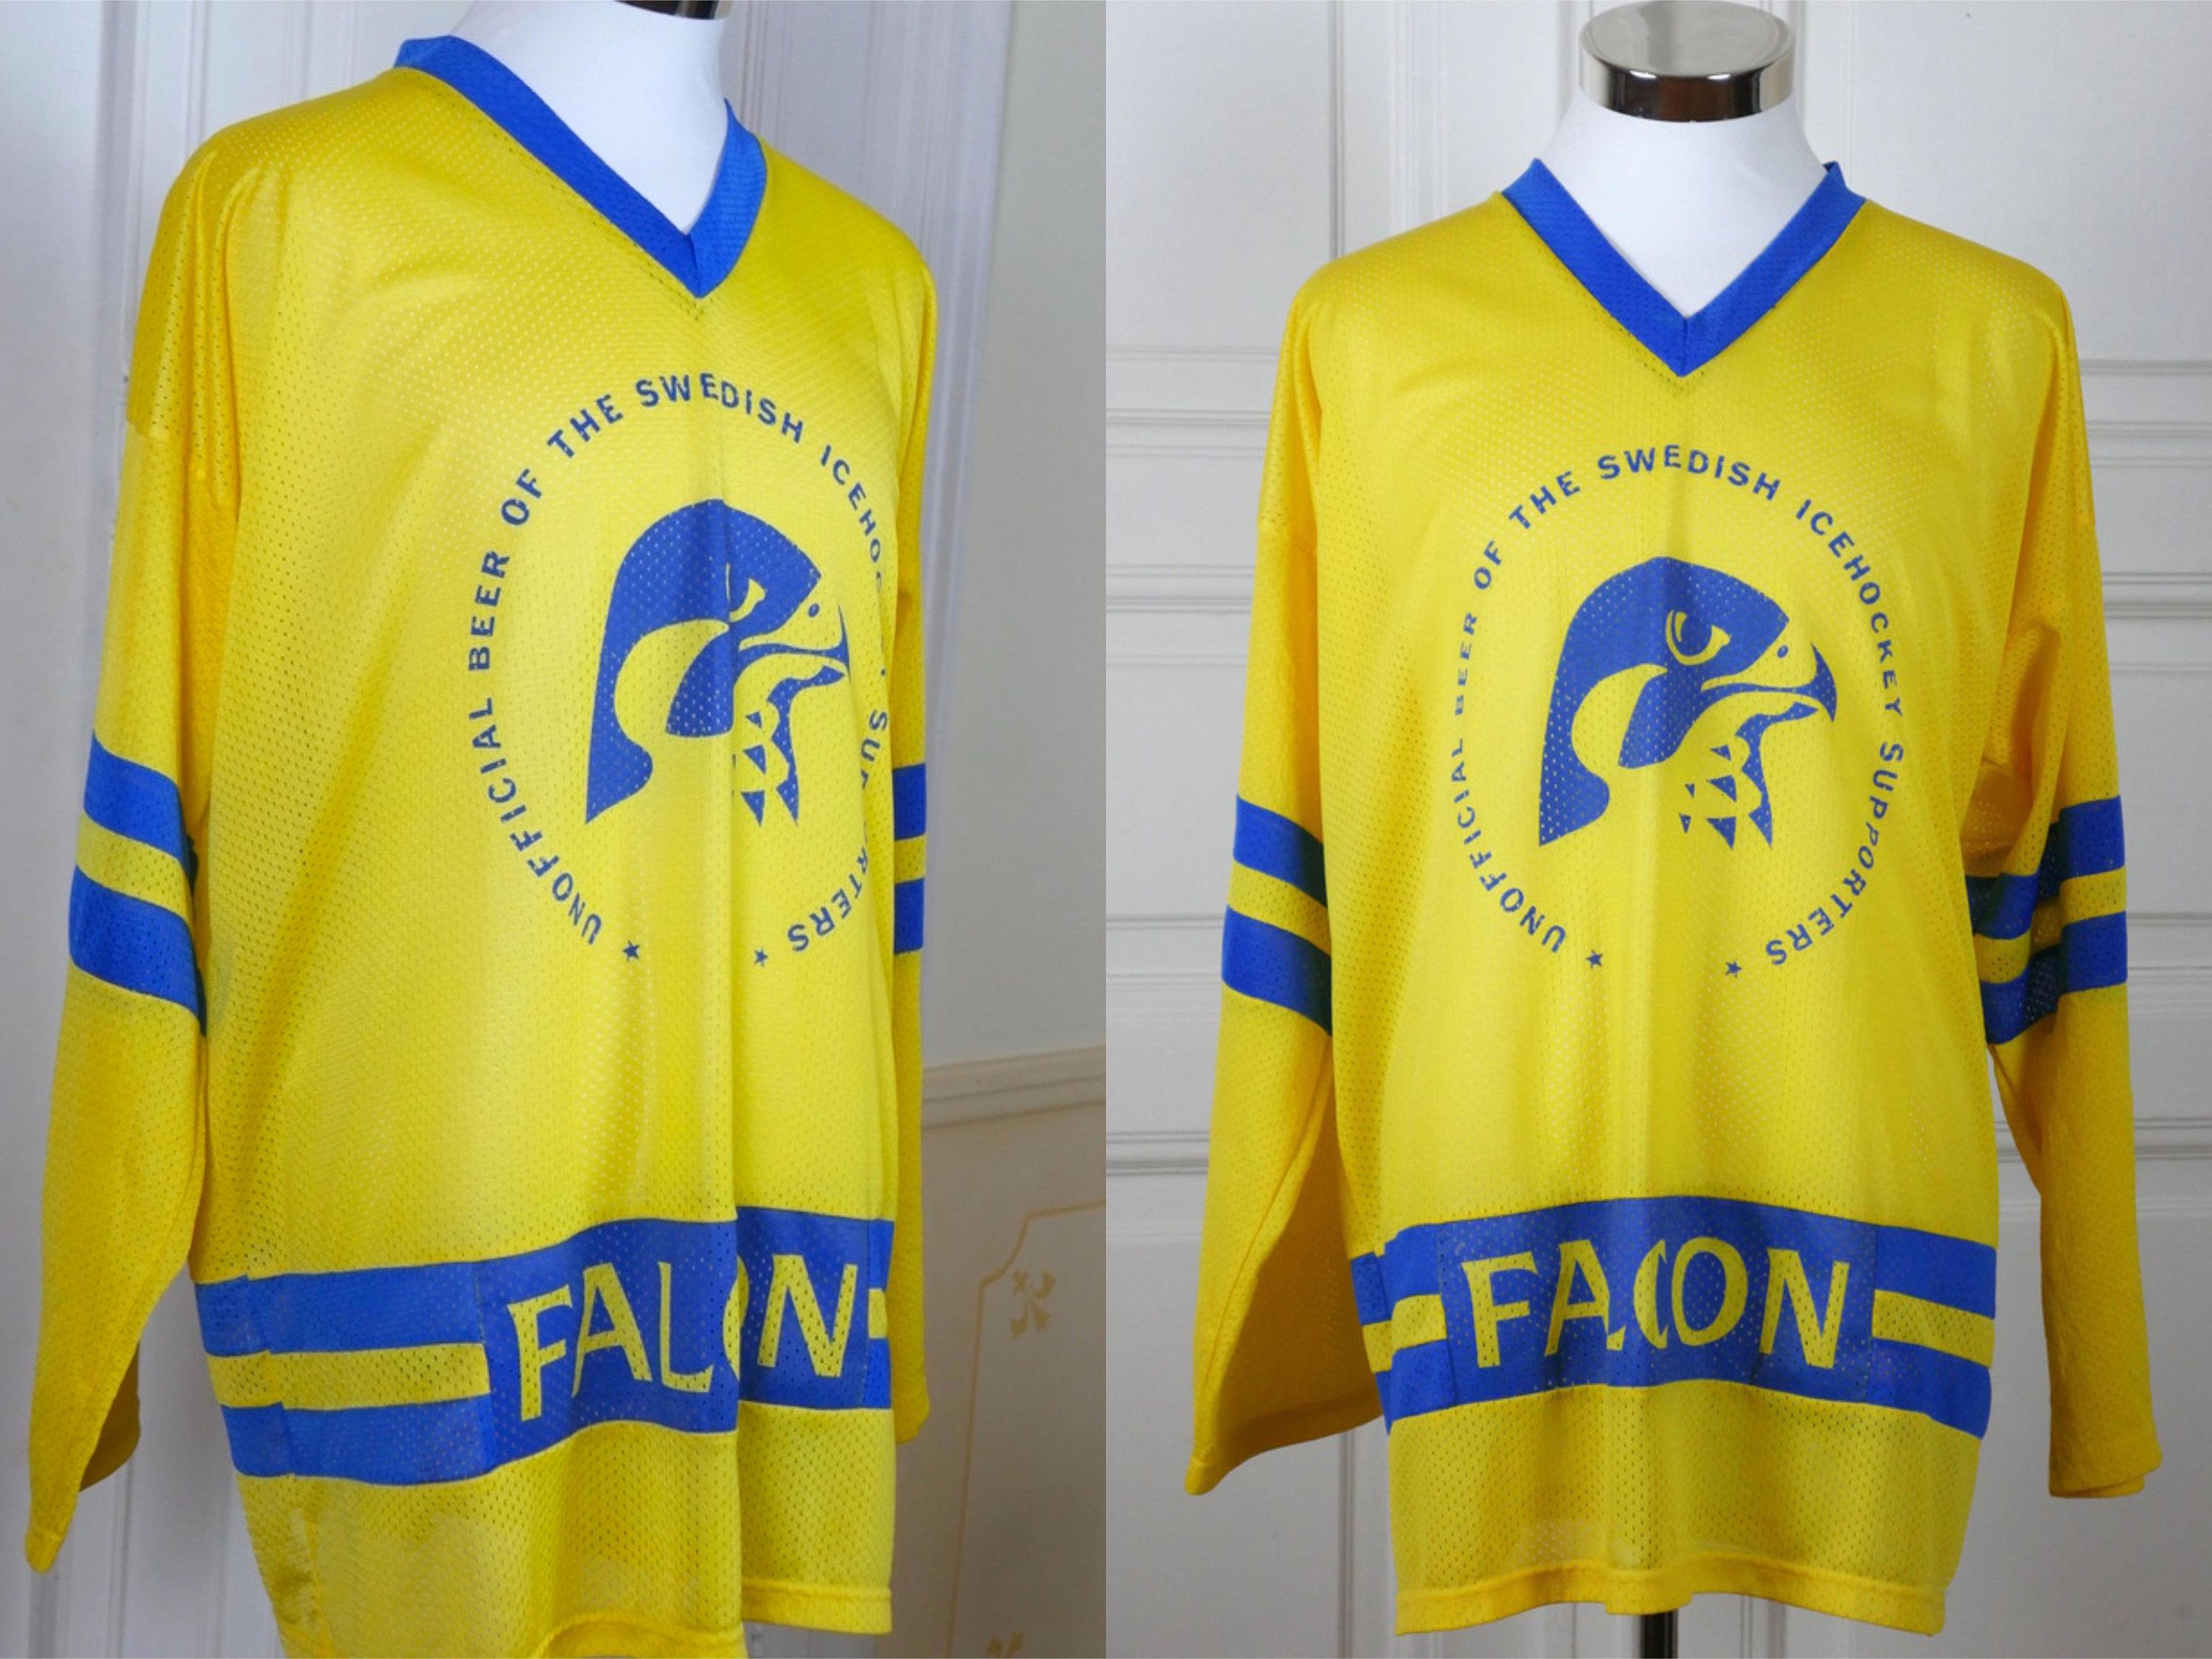 Swedish Vintage Hockey Jersey Yellow Blue Ice Hockey Jersey Lightweight Breathable Falcon Beer Klass Iii European Hoc Jersey Sweater Hockey Jersey Fan Shirts